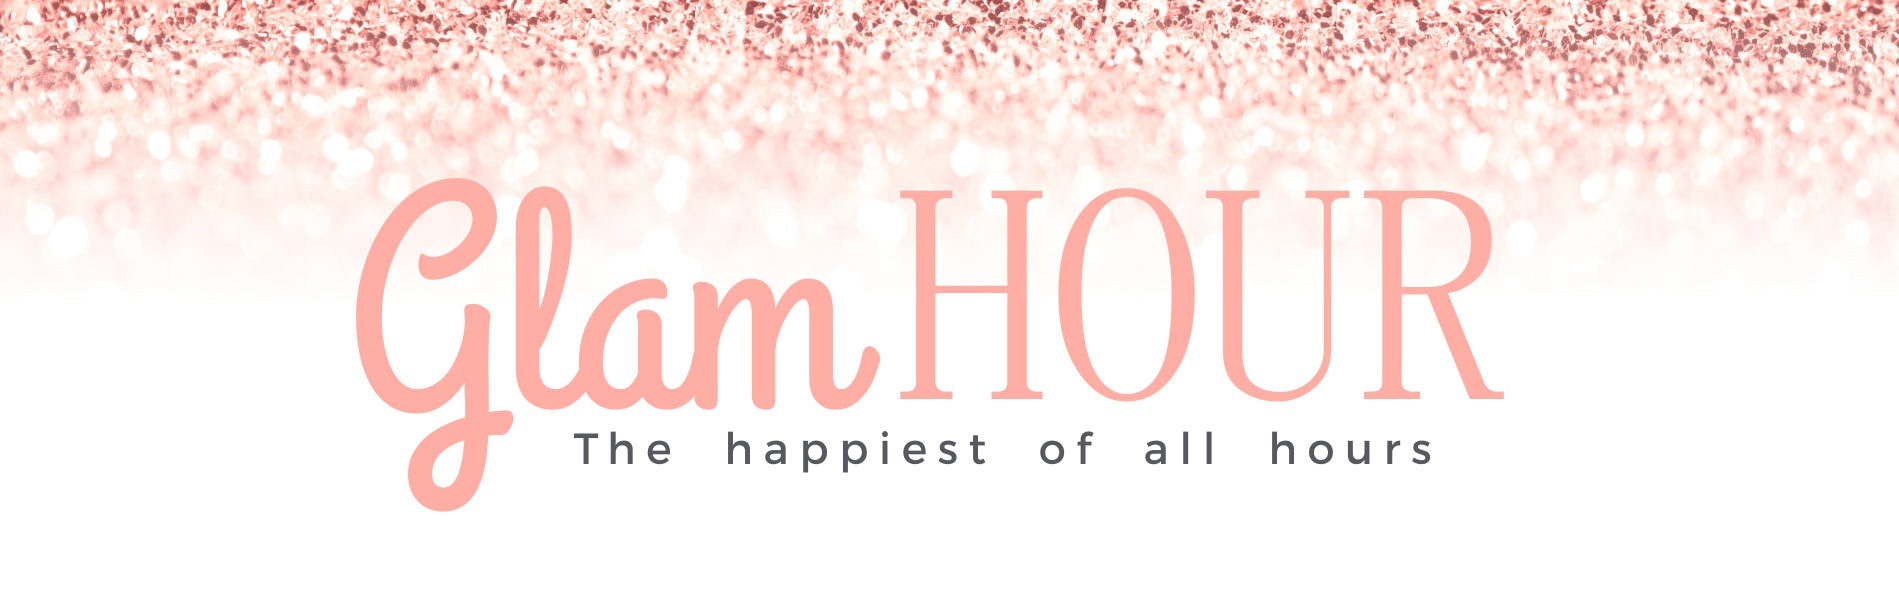 Join us for the happiest hour!